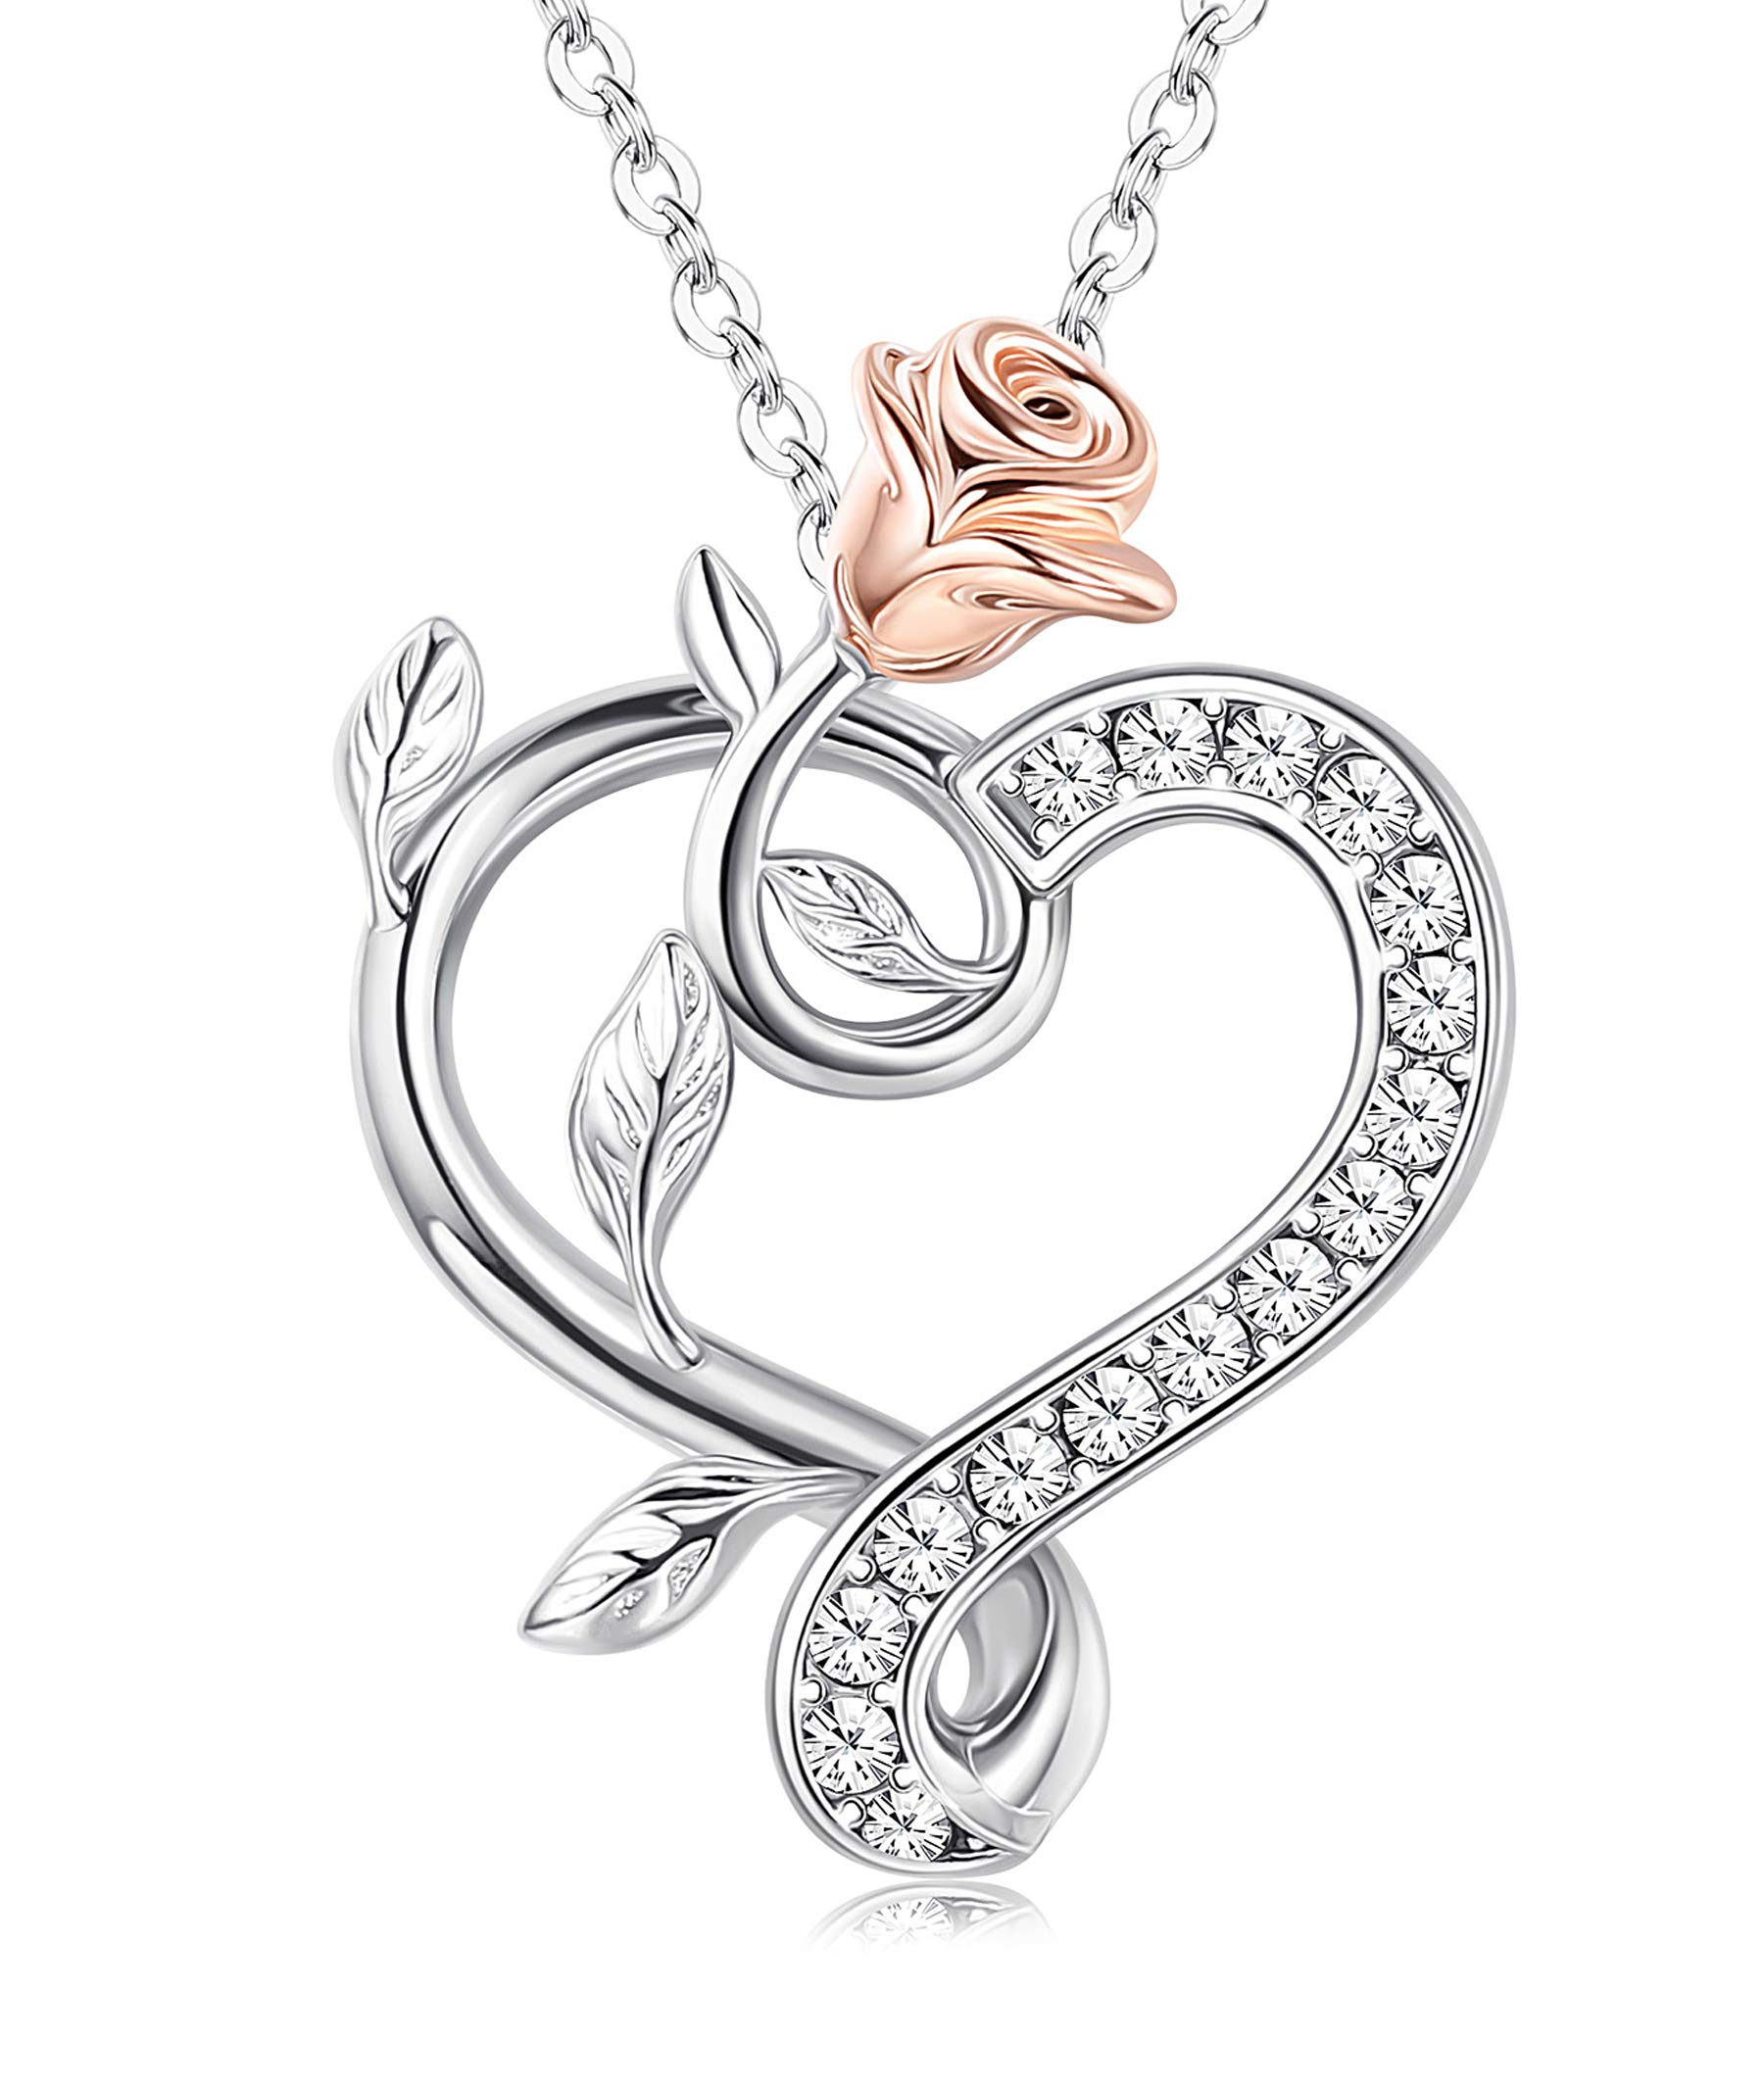 Sllaiss 925 Sterling Silver Rose Heart Crystal Necklace Crystals from Swarovski Rose Flower Pendant Eternal Love Heart Jewelry for Women, Lover Christmas Anniversary Gift with Box